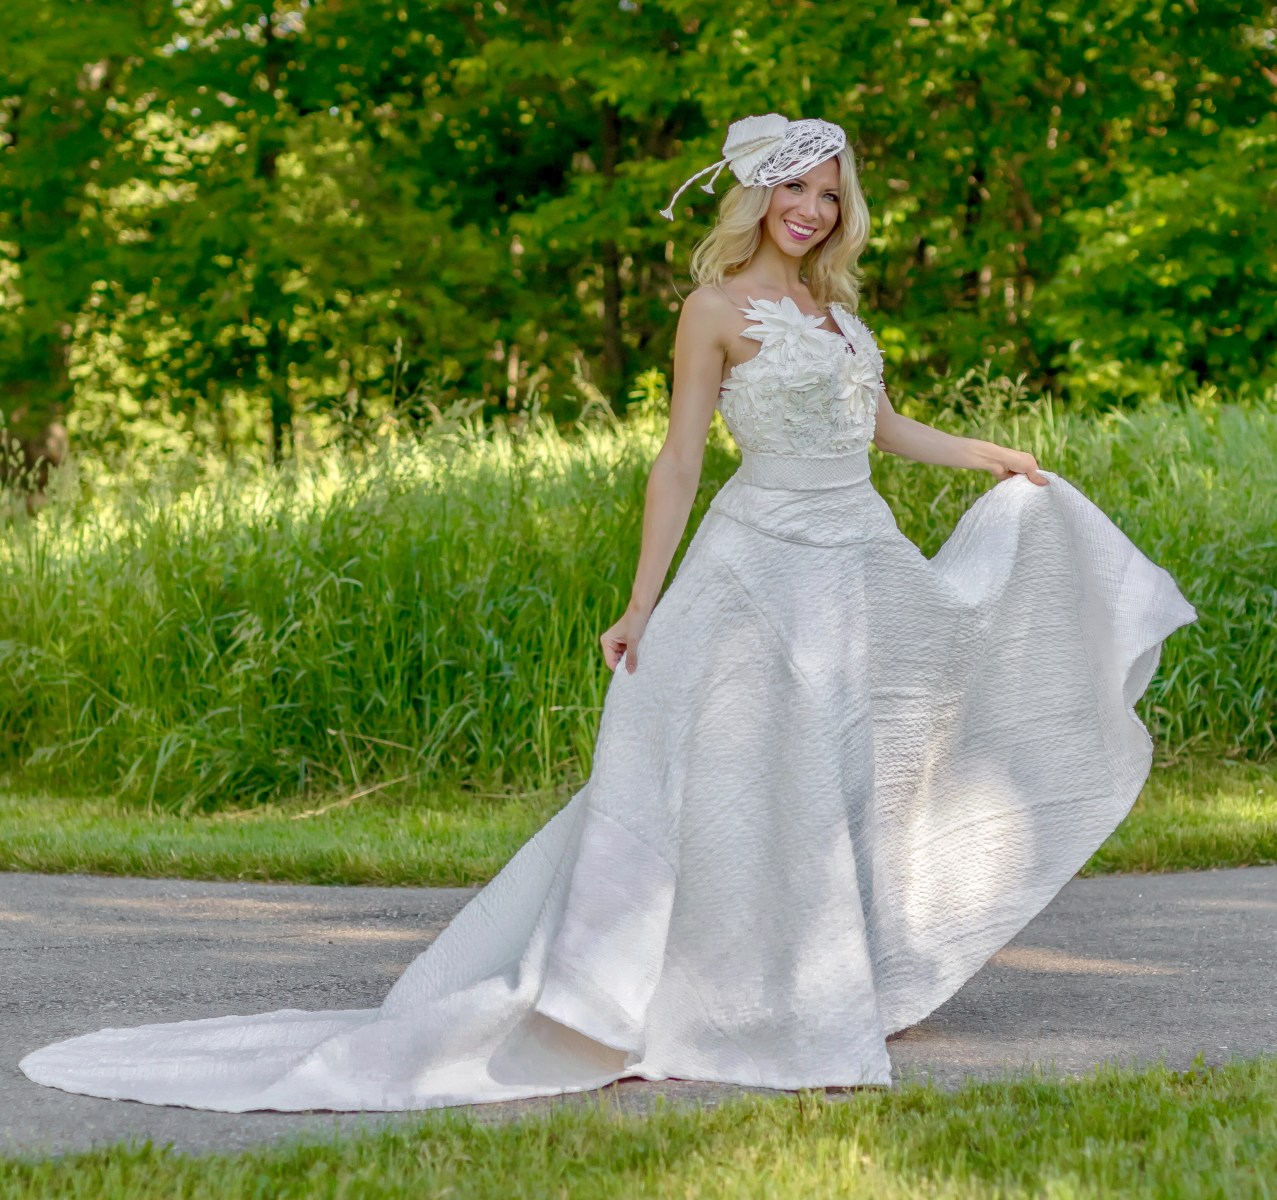 10 Toilet Paper Wedding Dress Designers Competition